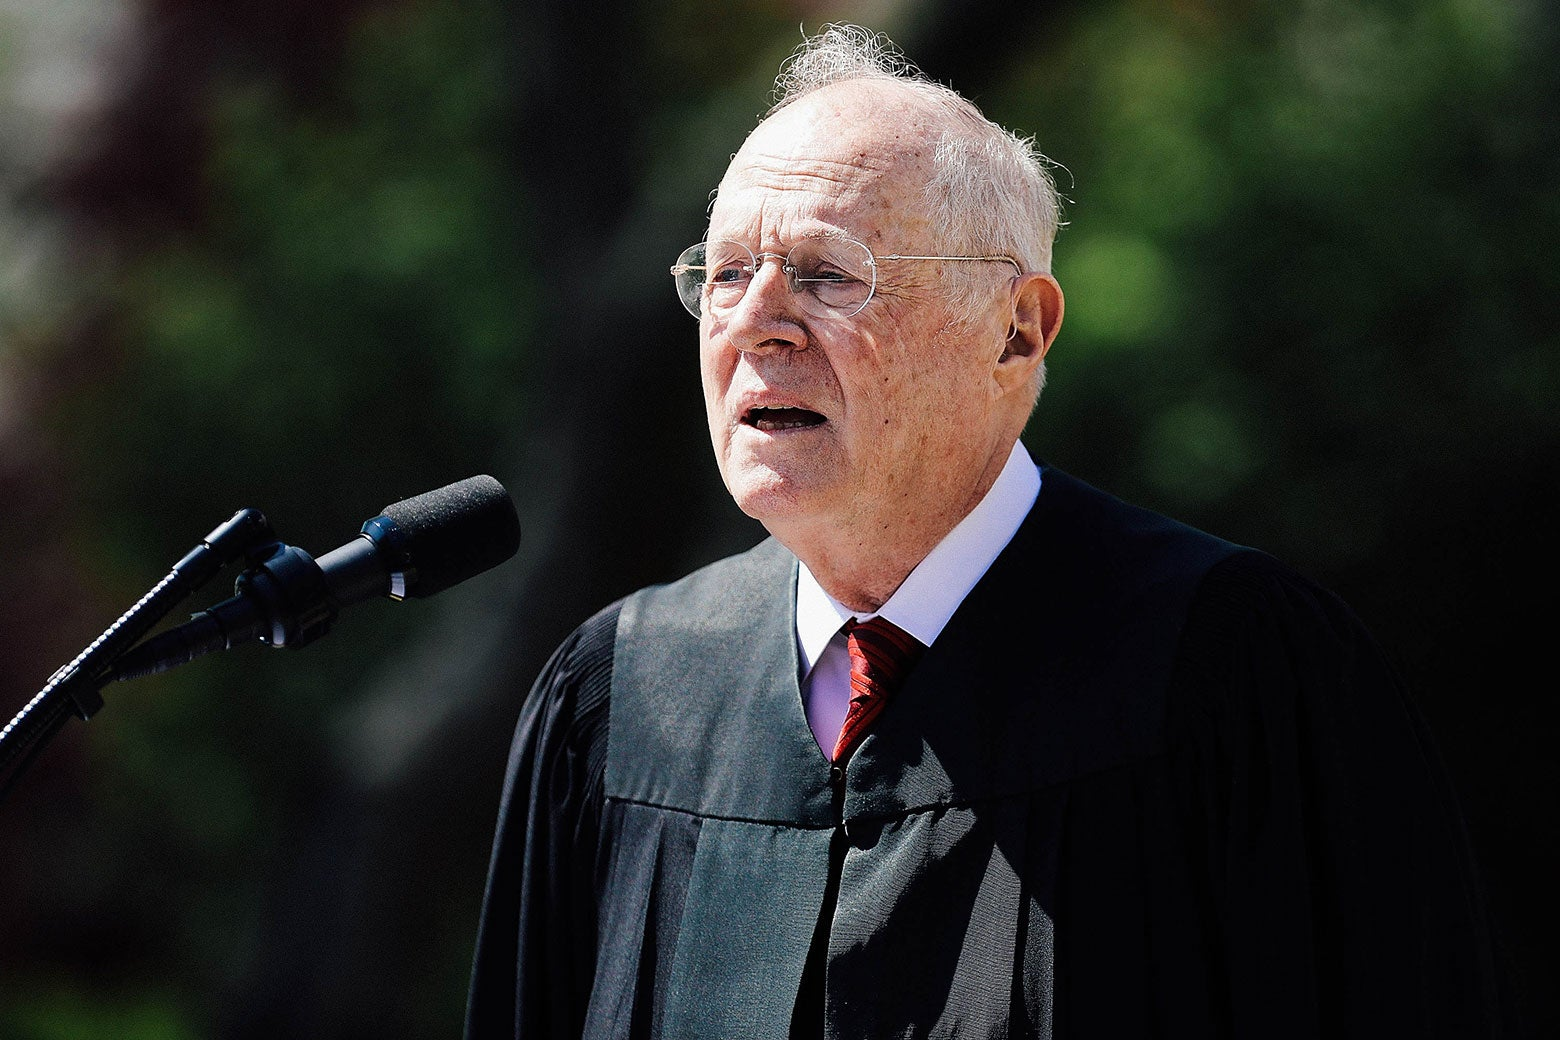 Anthony Kennedy speaking into a microphone